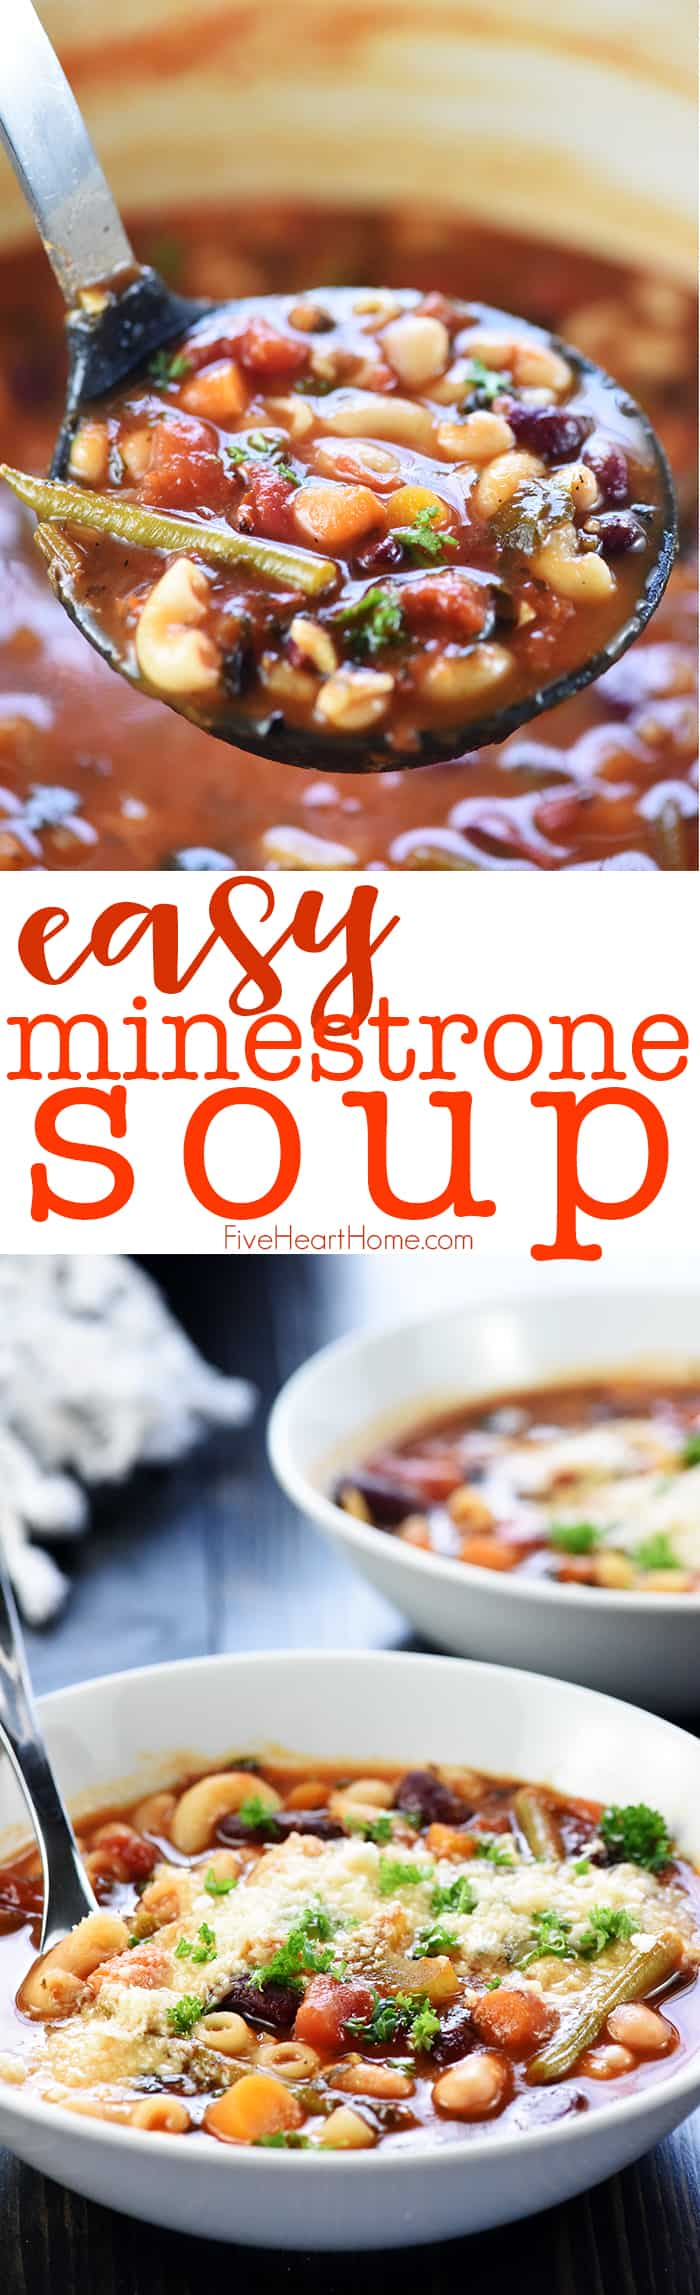 Collage of Minestrone Soup with text overlay